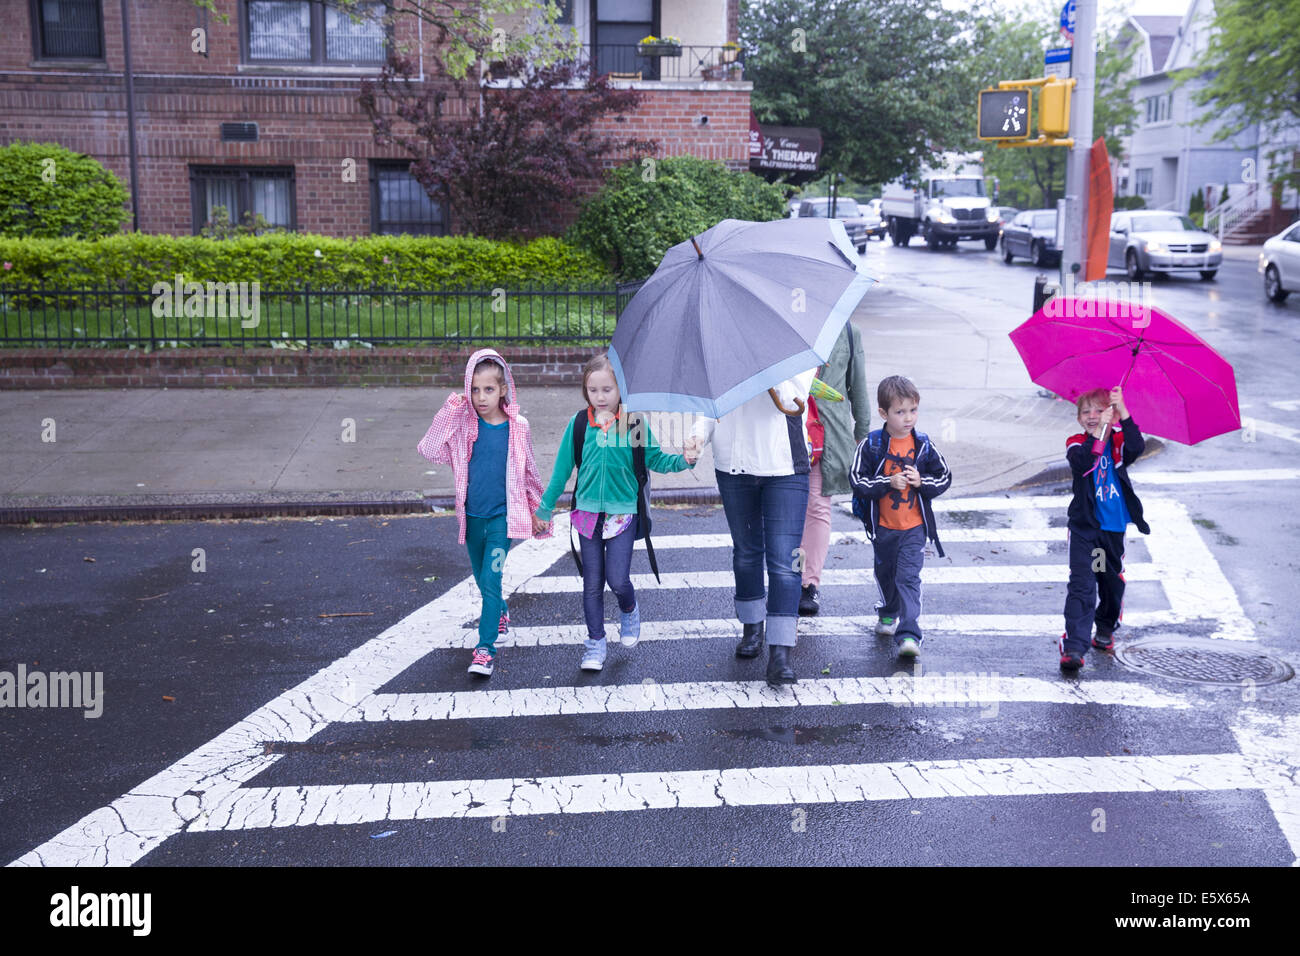 Children go home after school on a rainy day in brooklyn for Buying a house in brooklyn